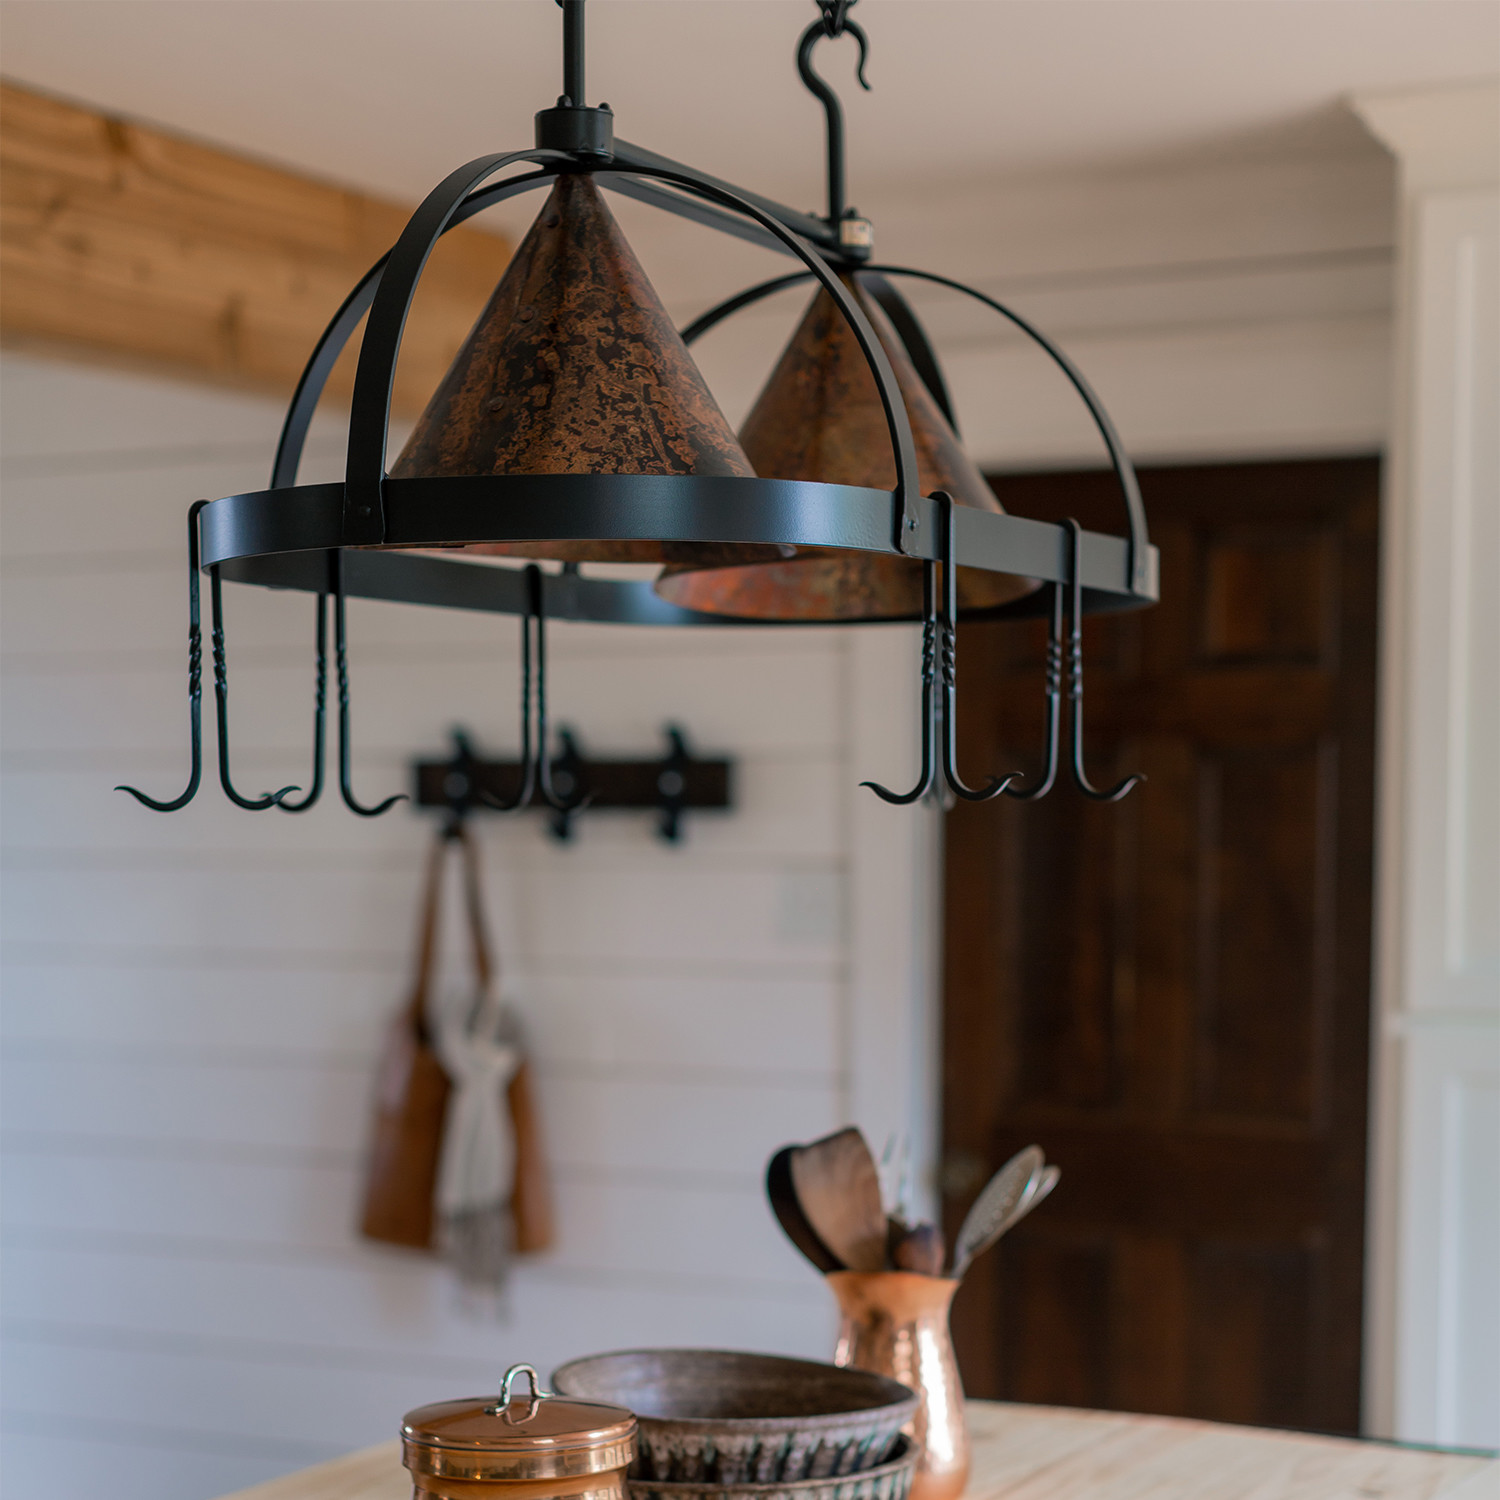 Dutch Oval Pot Rack With Fired Copper Shades